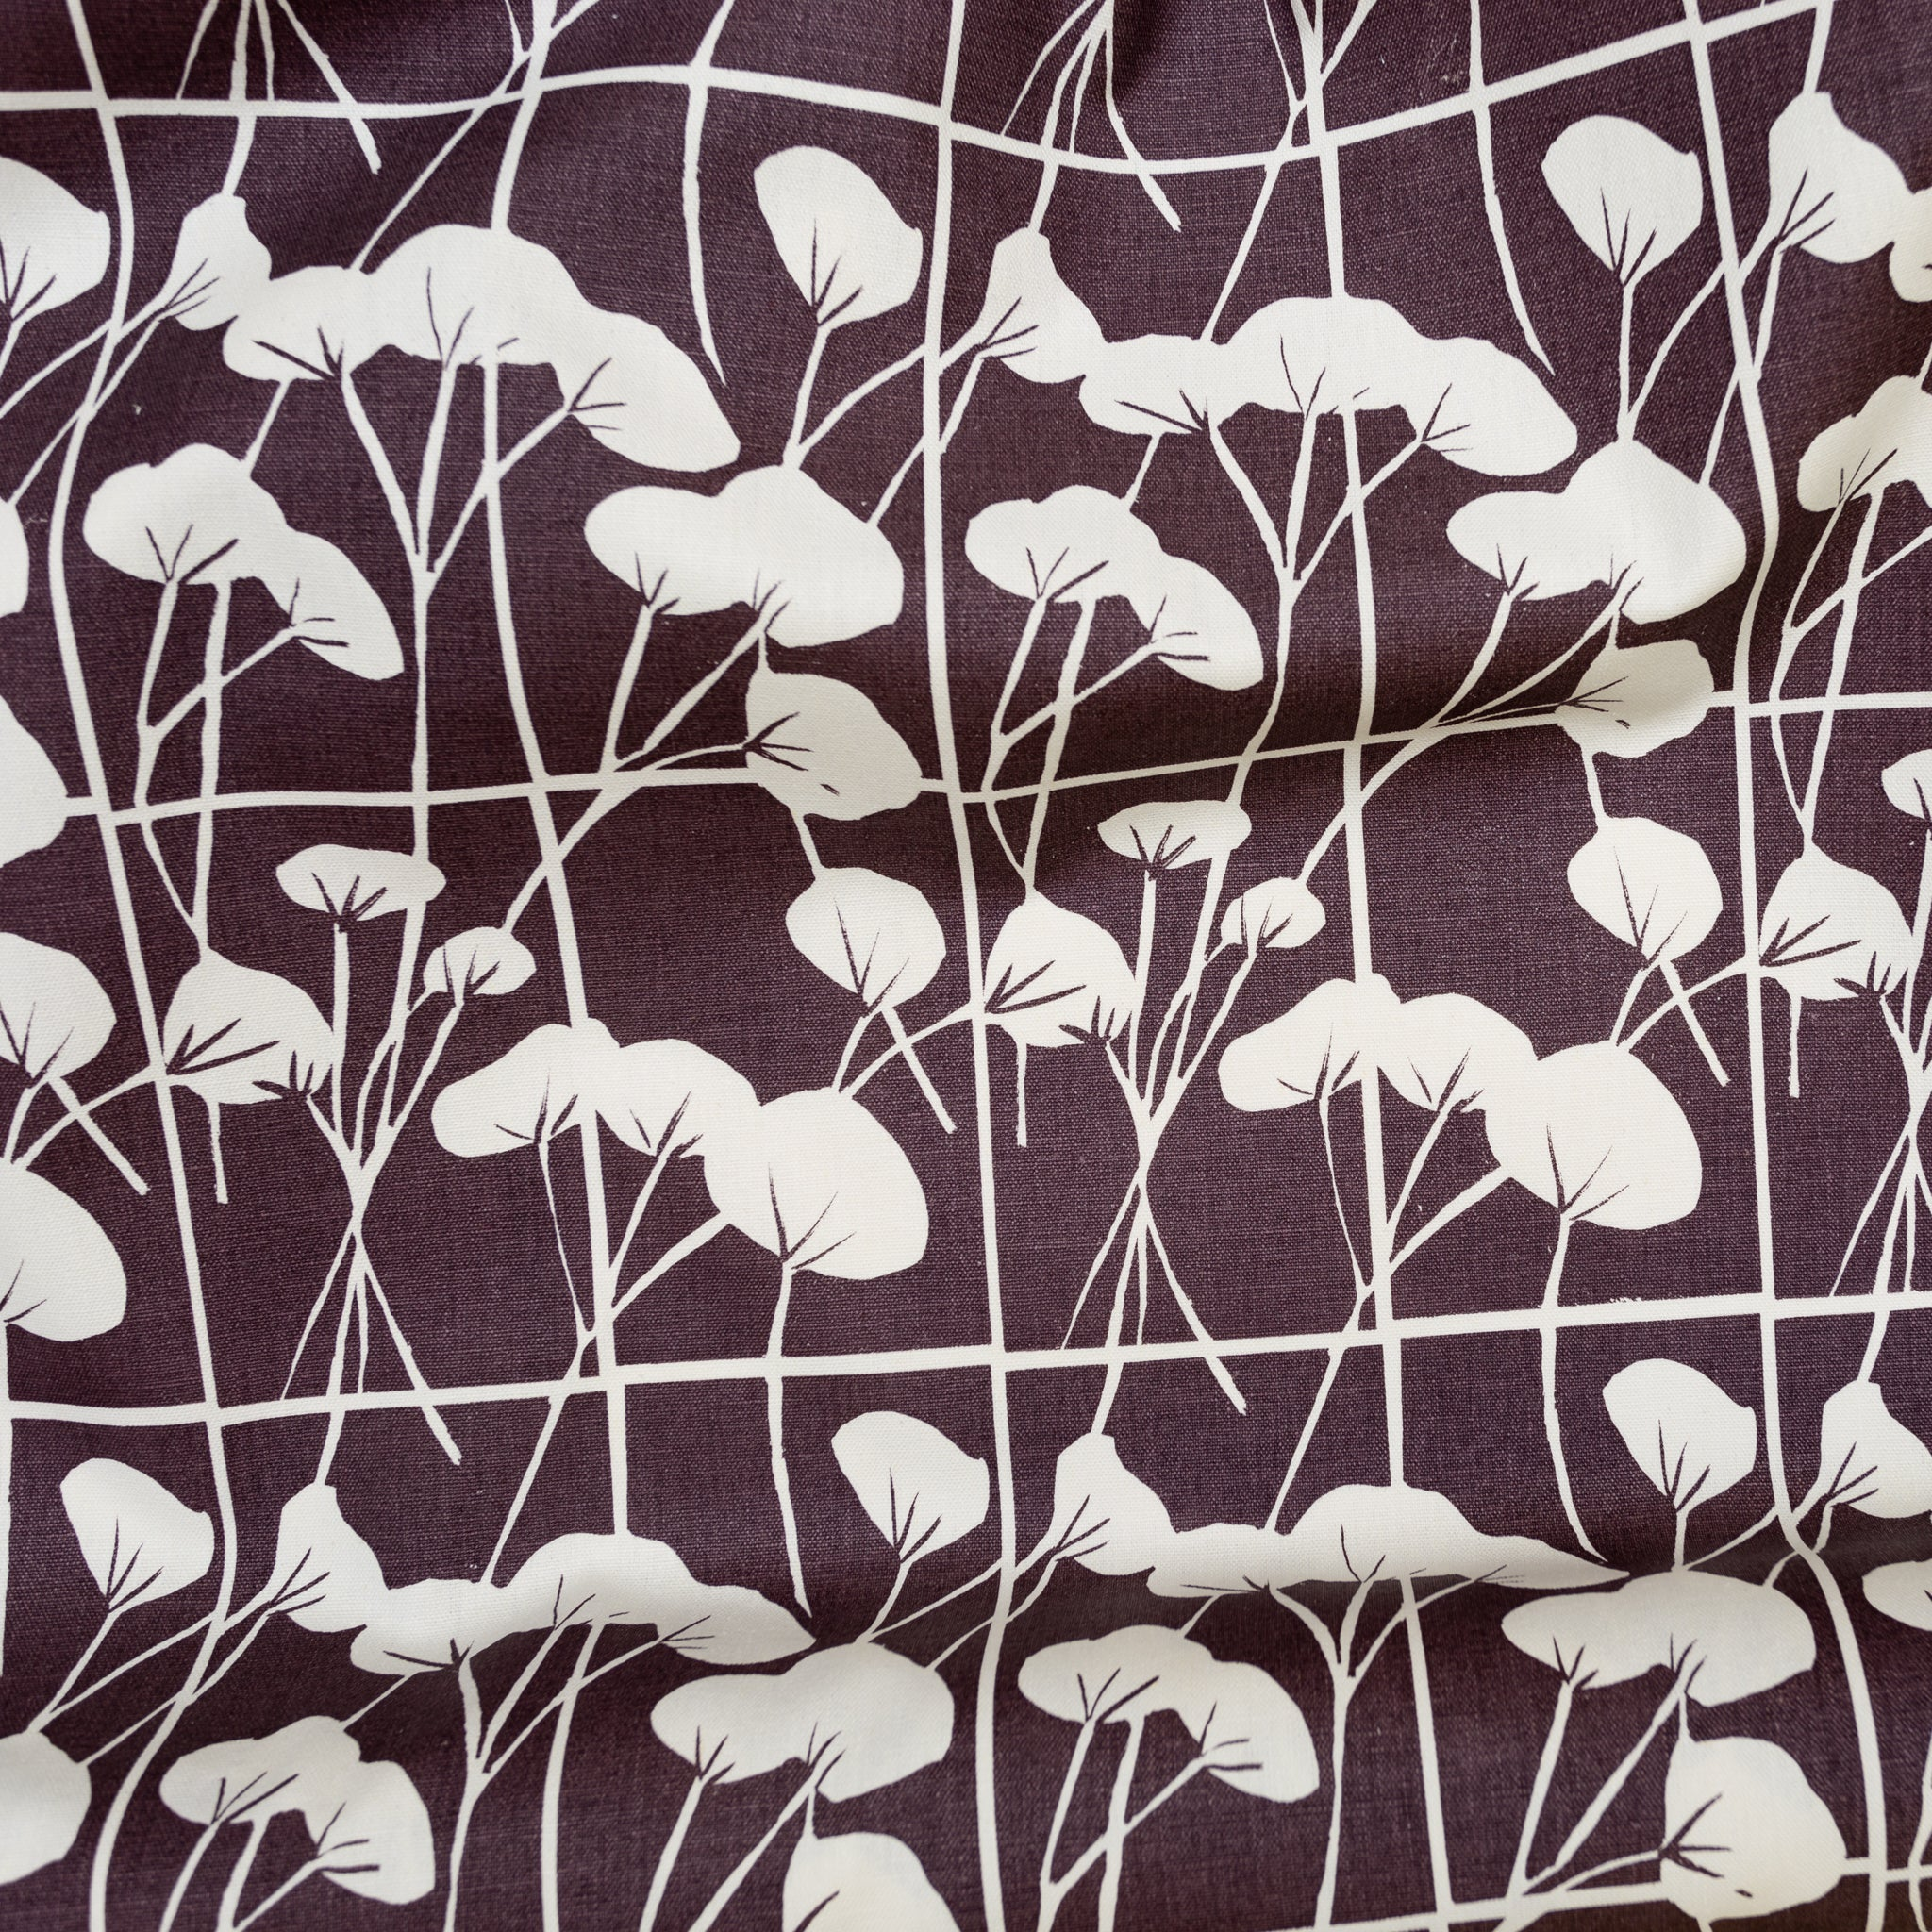 Cotton in Oxalis - Mid Weight